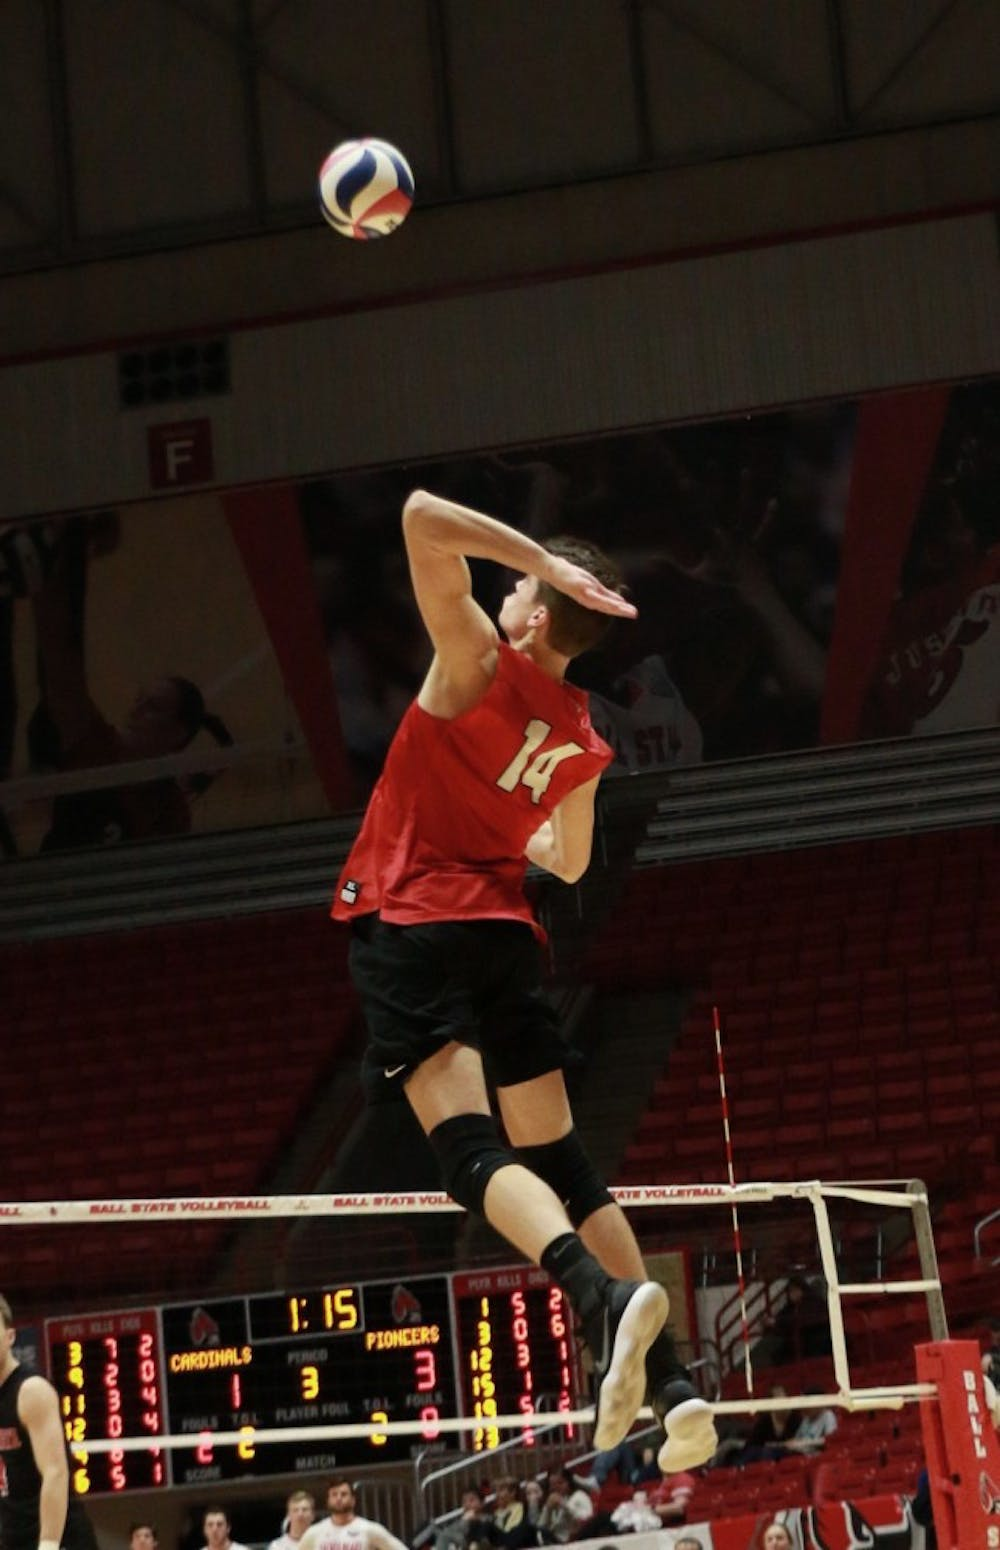 Consistency in defense, serving propel Ball State Men's Volleyball to sweep over Saint Francis